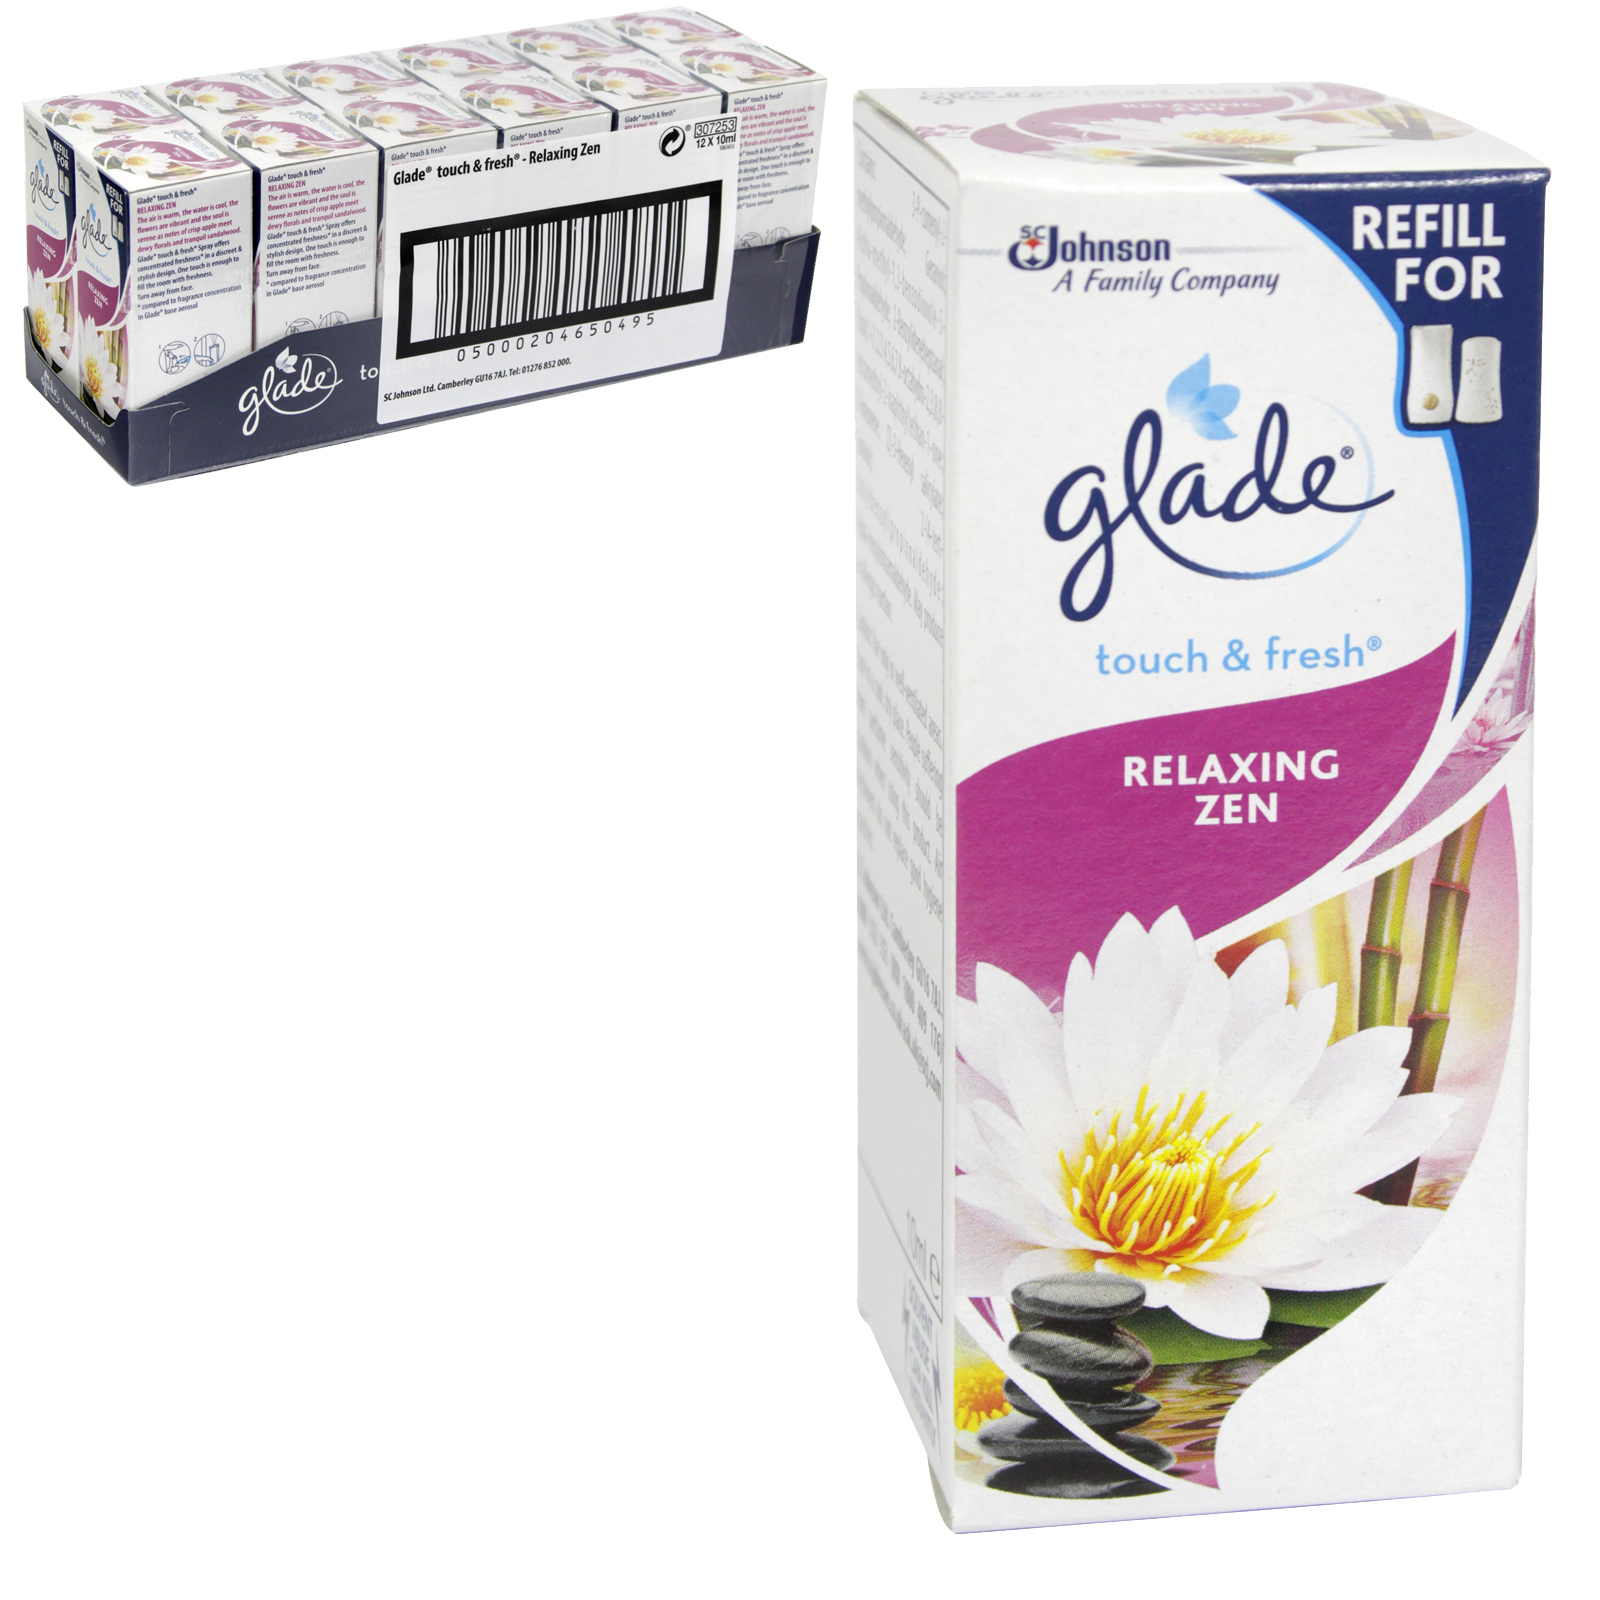 GLADE TOUCH N FRESH REFILL 10ML RELAXING ZEN X12